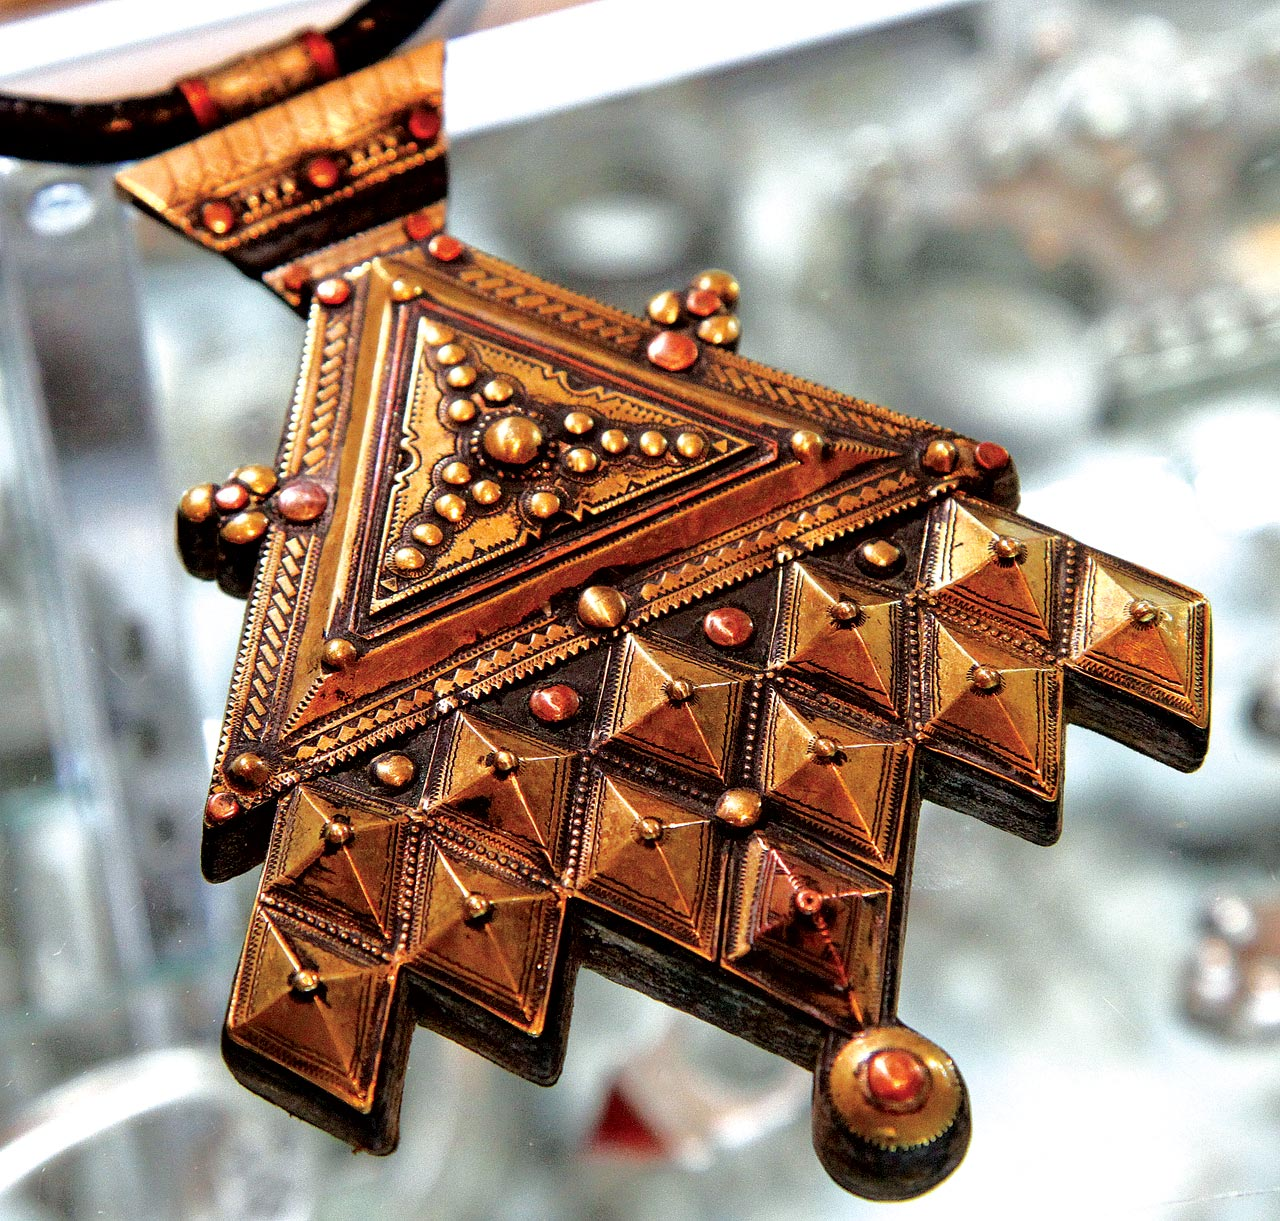 CONTEMPORARY VERSION OF TRADITIONAL TUAREG HAMSA/KHOMESSA. Niger, fabricated, of brass, copper and leather. It is the melding of a triangular amulet and a doubled hamsa, although with two more elements, so as to make the design symmetrical. Both the triangle and hamsa offer protection. While this pendant is new and in base metals, there is still a good level of crafting.  Courtesy of Ethnic Embellishments.